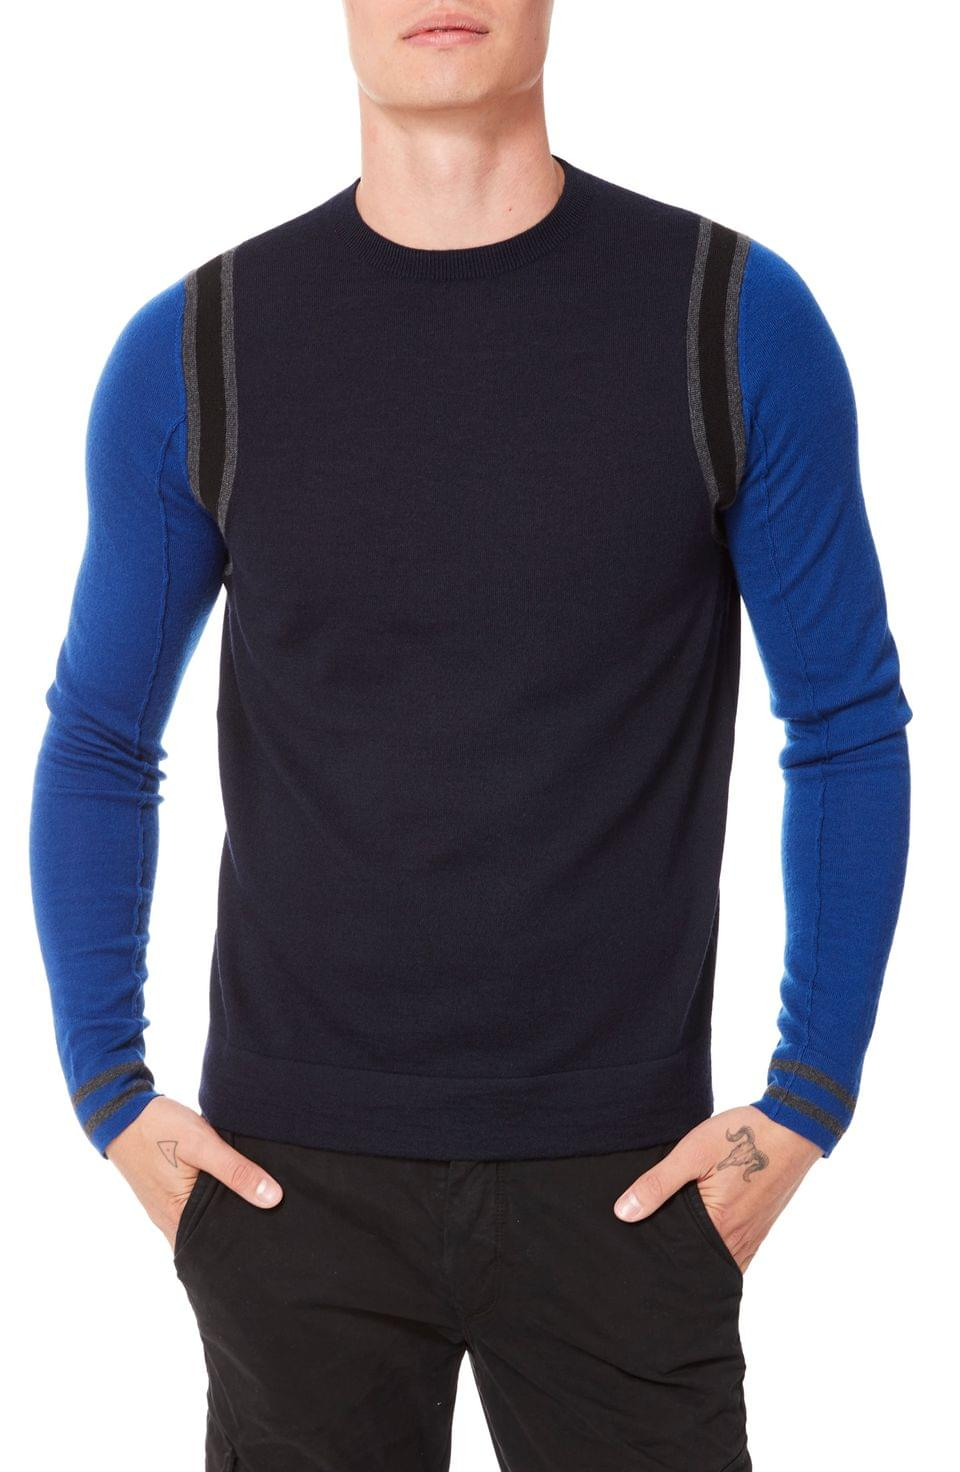 Men's Good Man Brand MVP Slim Fit Colorblock Wool Sweater